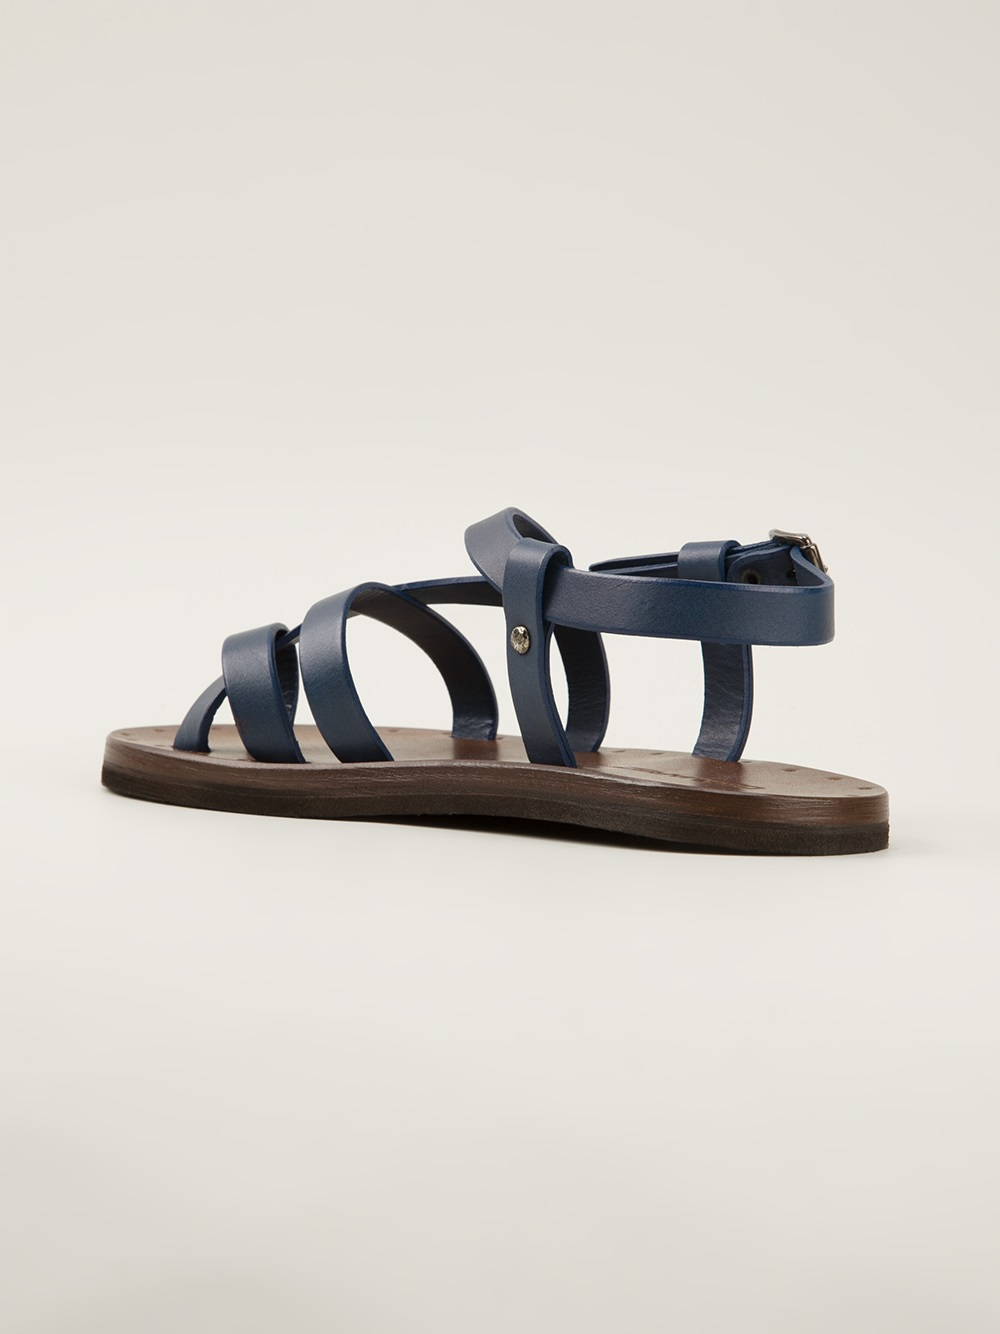 95c02f1e564 Lyst - DSquared² Toe Strap Sandals in Blue for Men